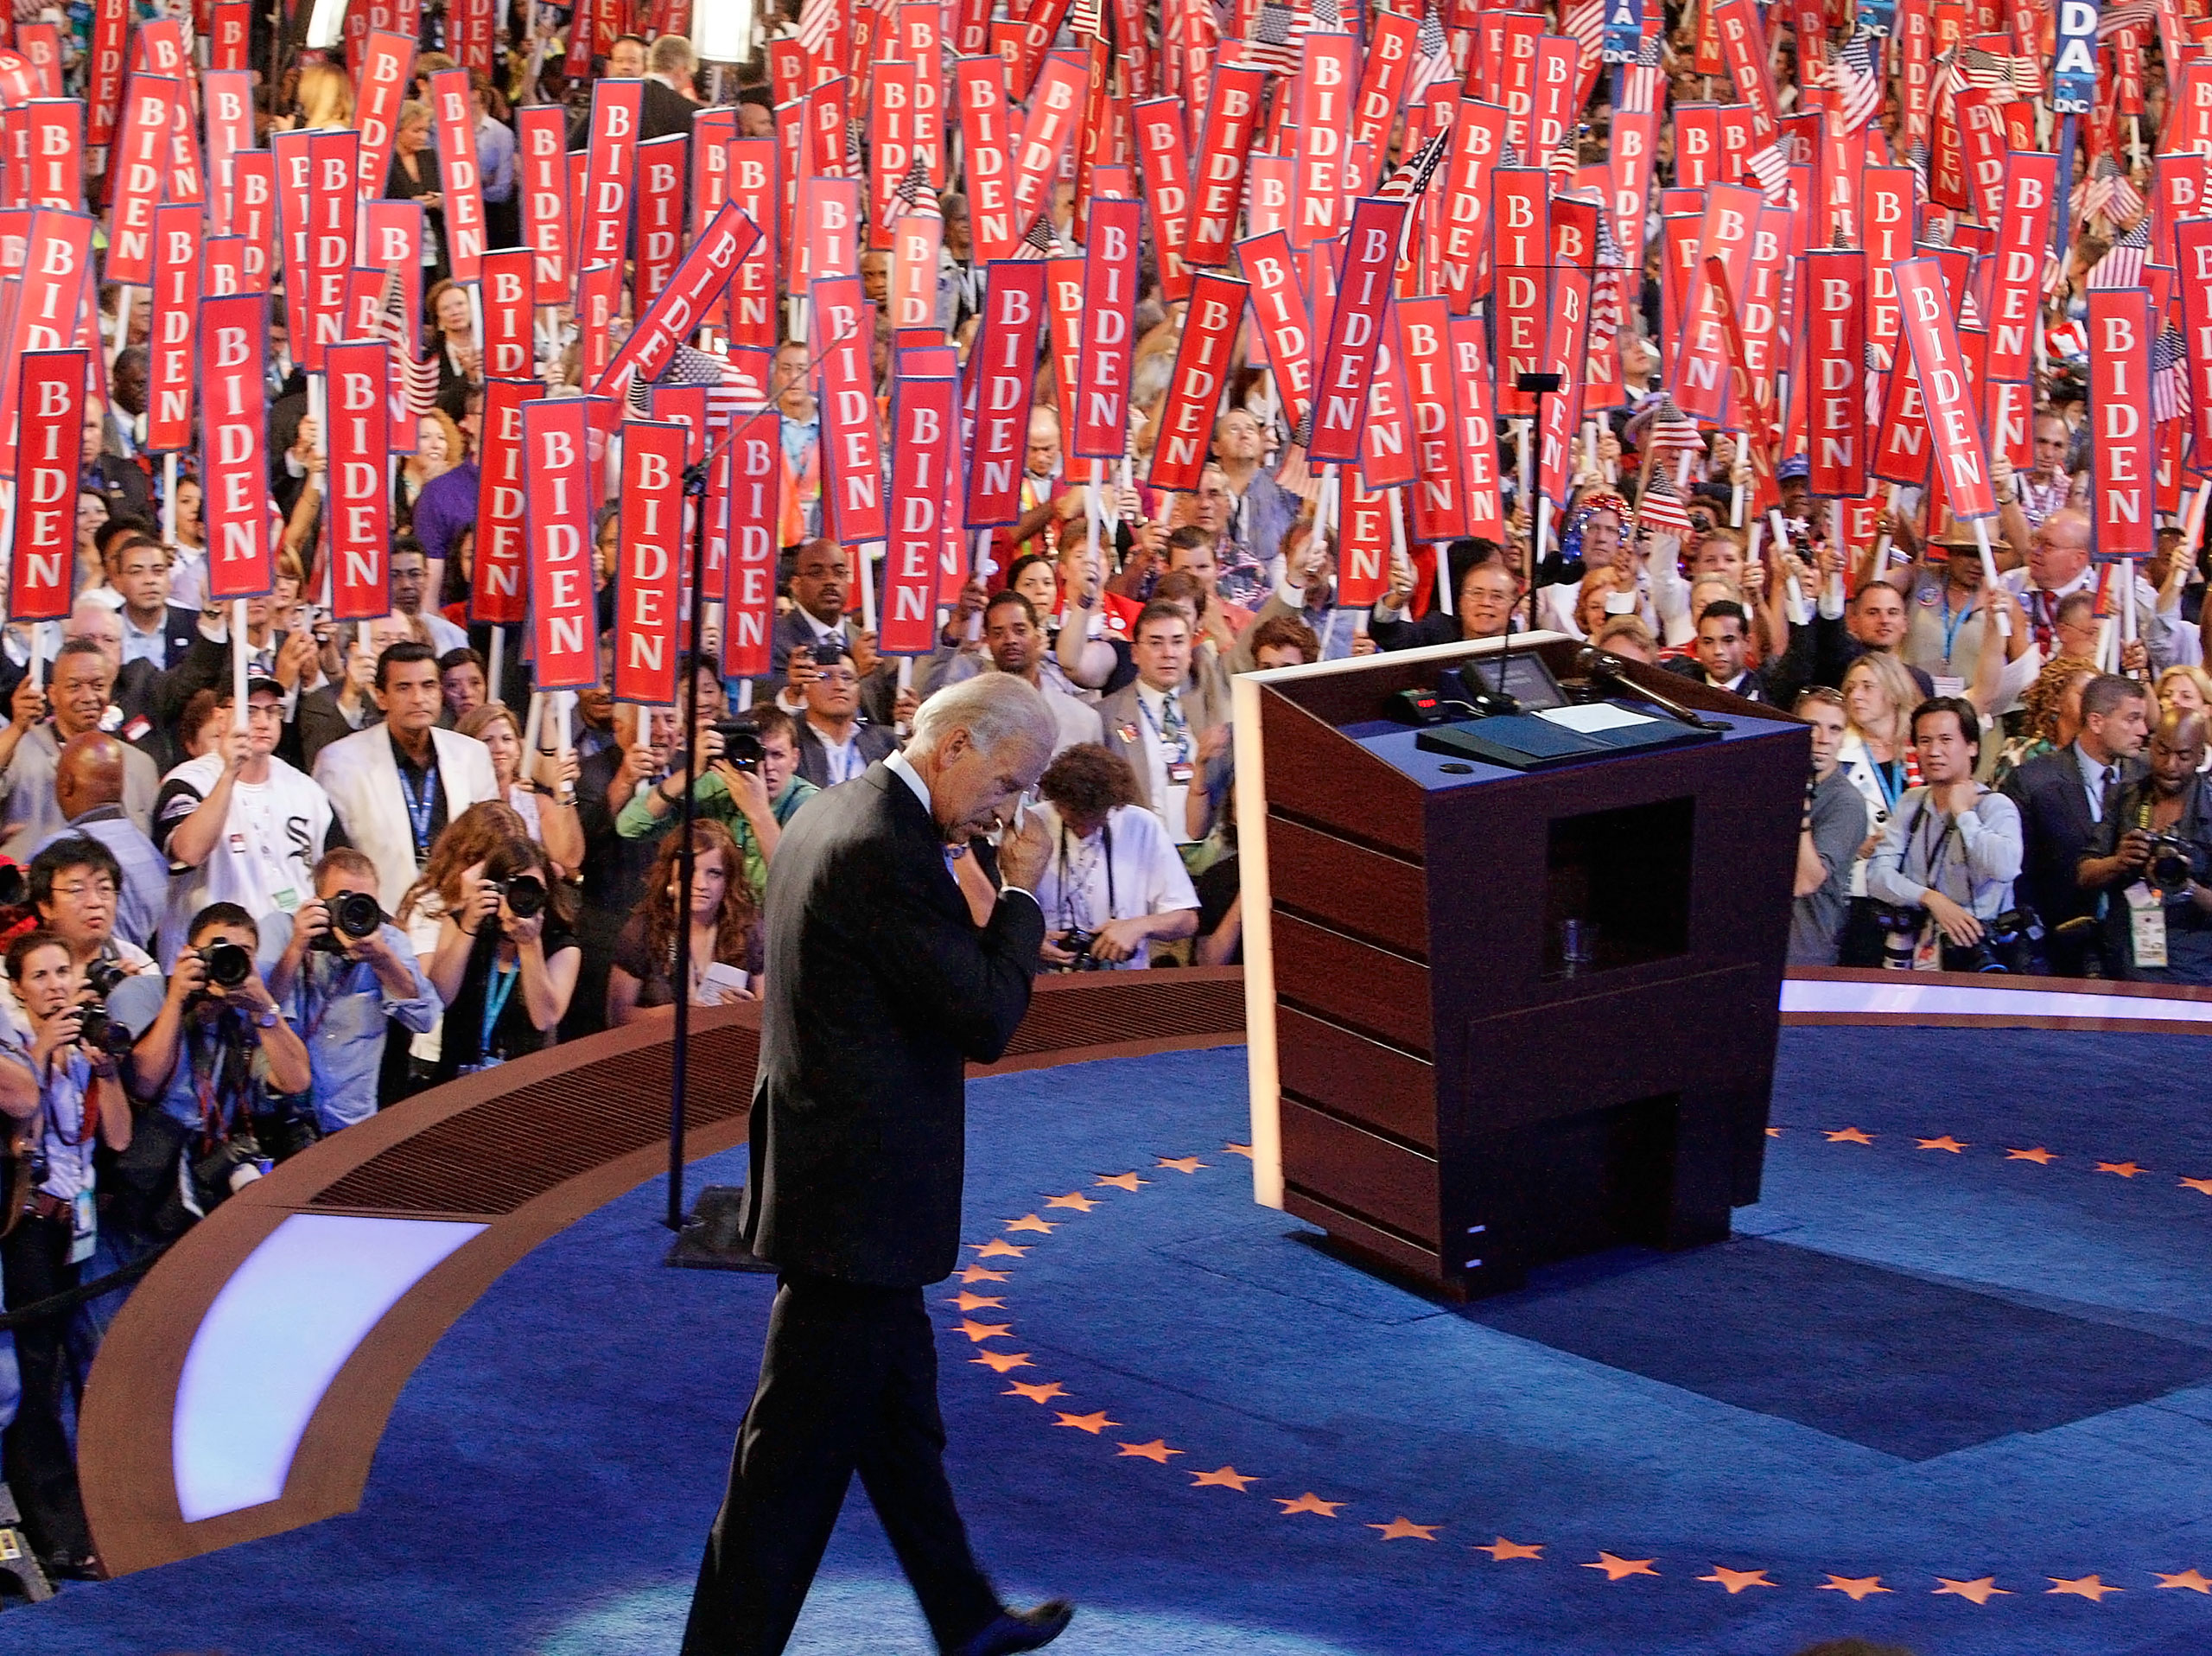 Joe Biden walks after accepting his party's nomination as their vice presidential candidate at the Democratic National Convention in Denver, Col., on Aug. 27, 2008.